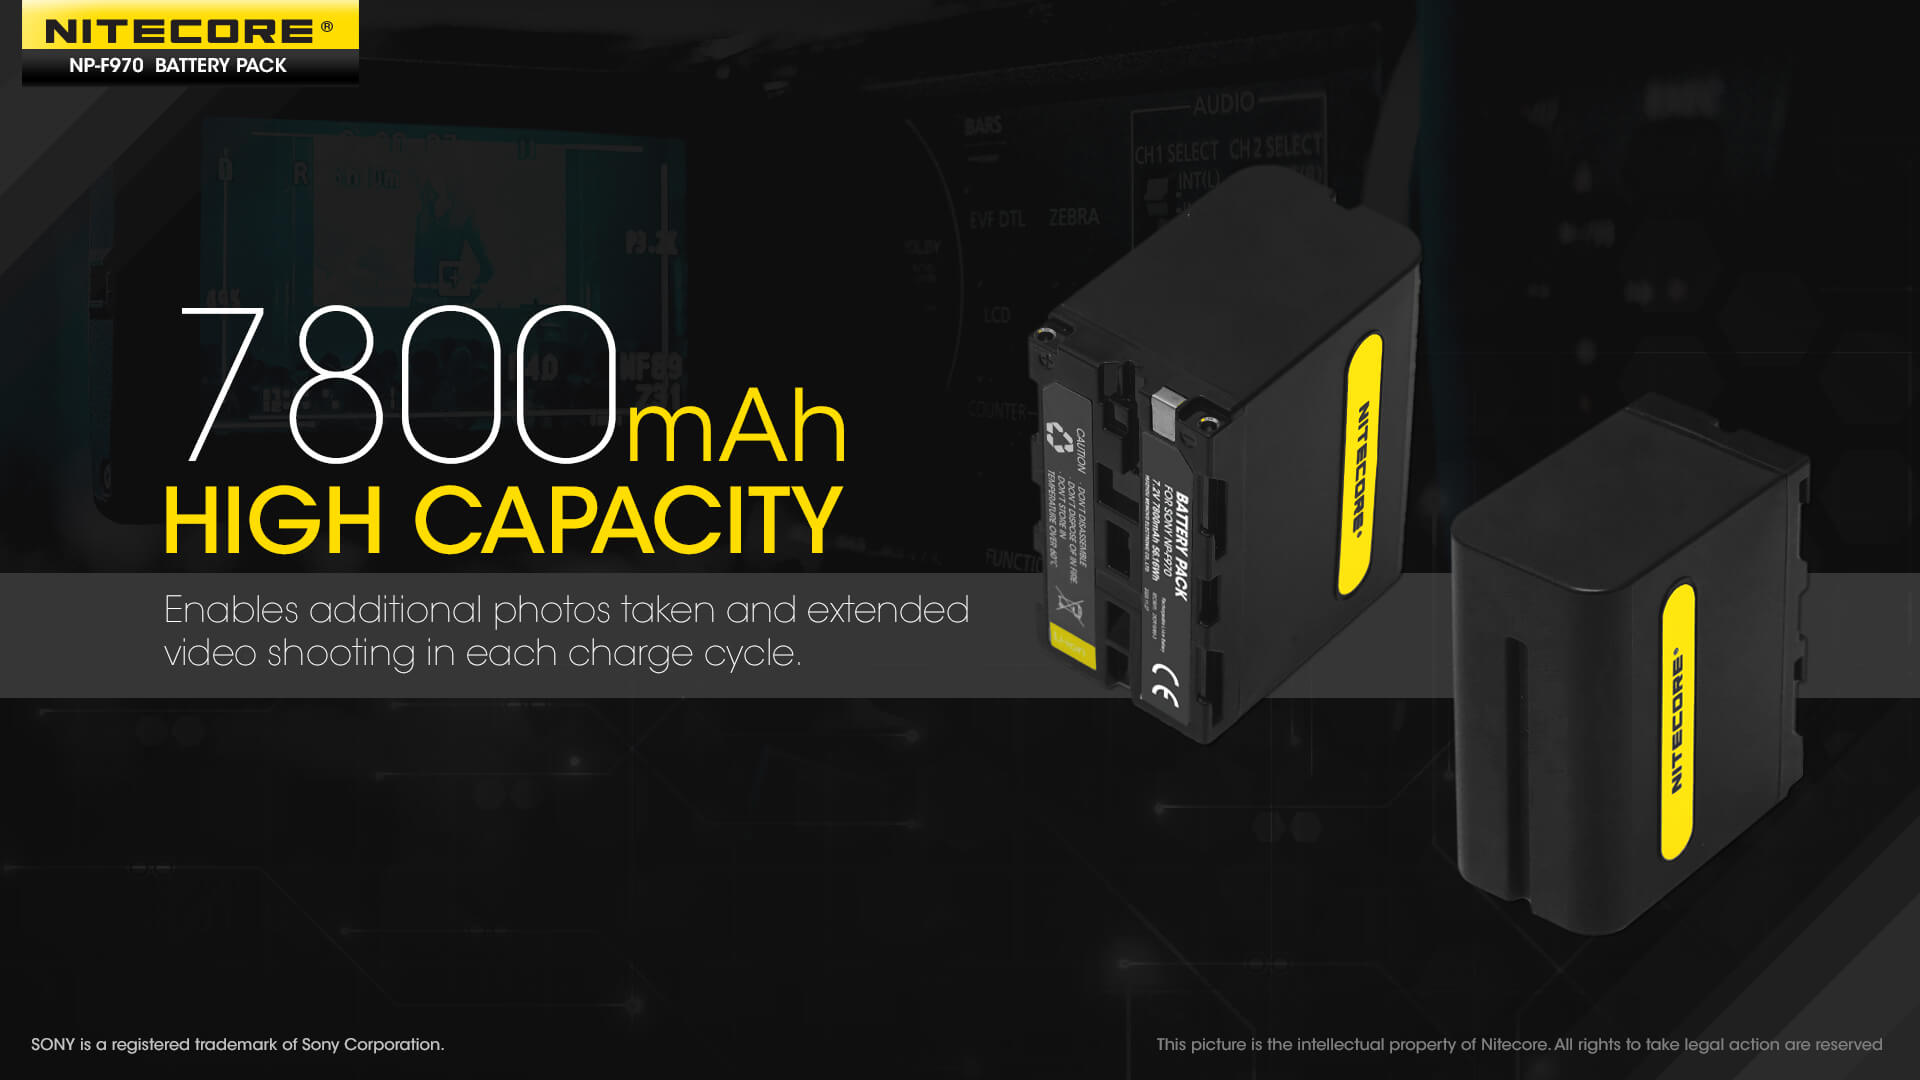 Nitecore Battery NP-F970 7,800mAh 7.2V for Sony Video Cameras